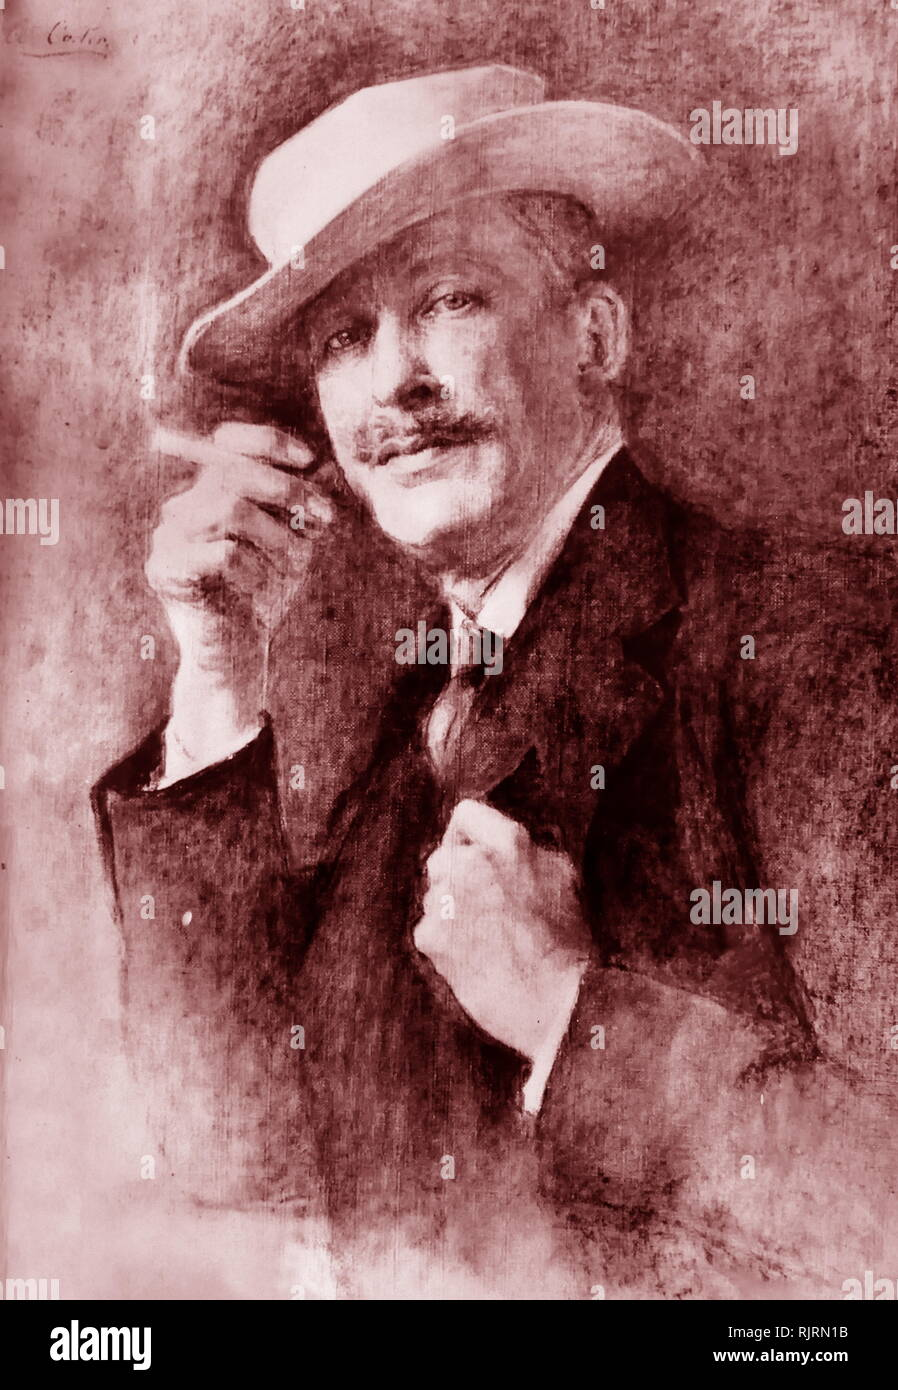 Sketch of the Lord Carnarvon, the 5th Earl of Carnarvon, (1866 - 1923); English peer and aristocrat best known as the financial backer of the search for and the excavation of Tutankhamen's tomb in the Valley of the Kings. - Stock Image